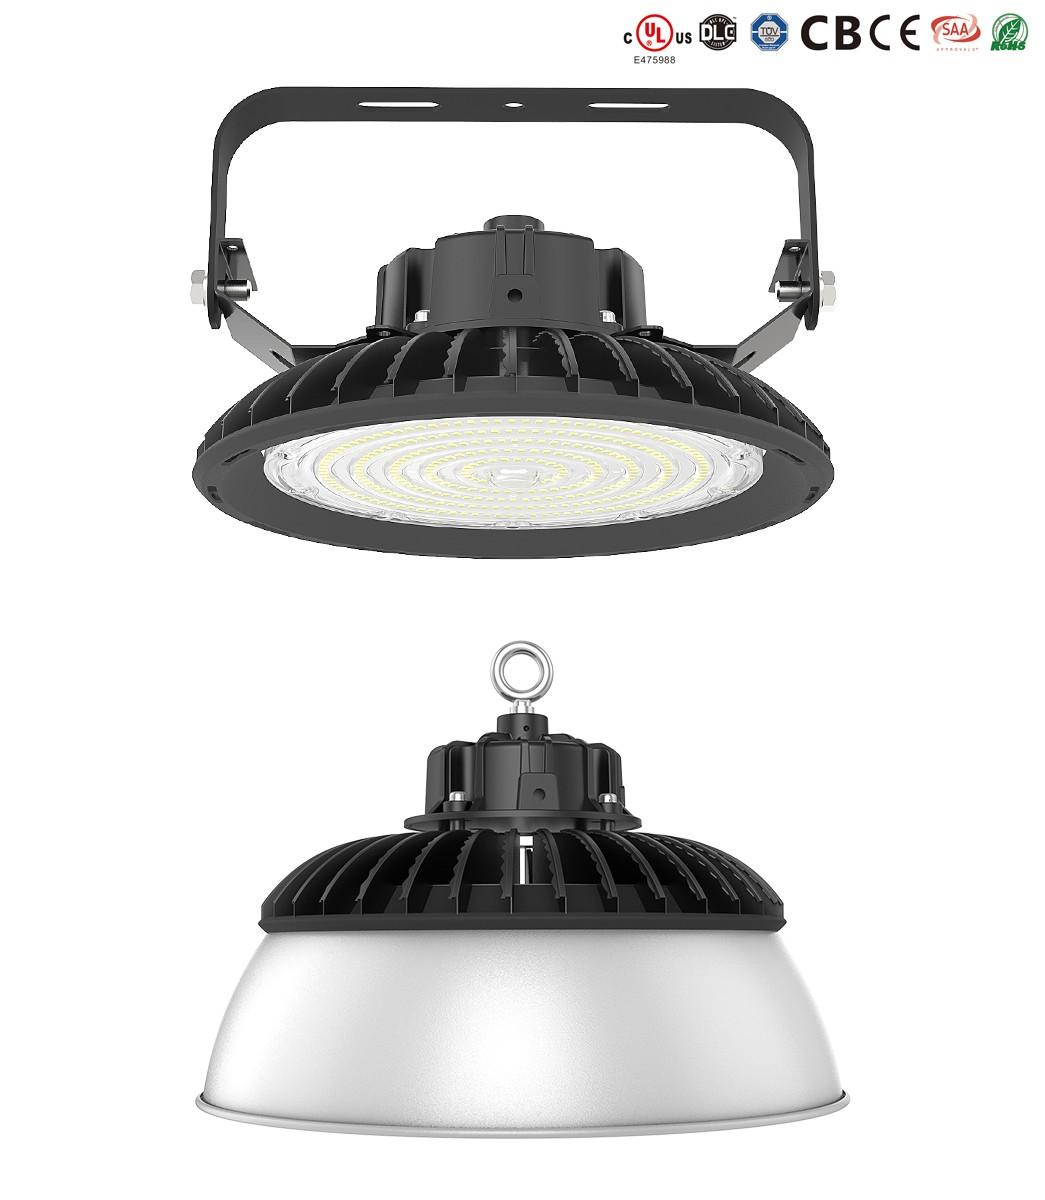 with longer lifespan dimmable high bay lighting canopy for business for warehouses-1